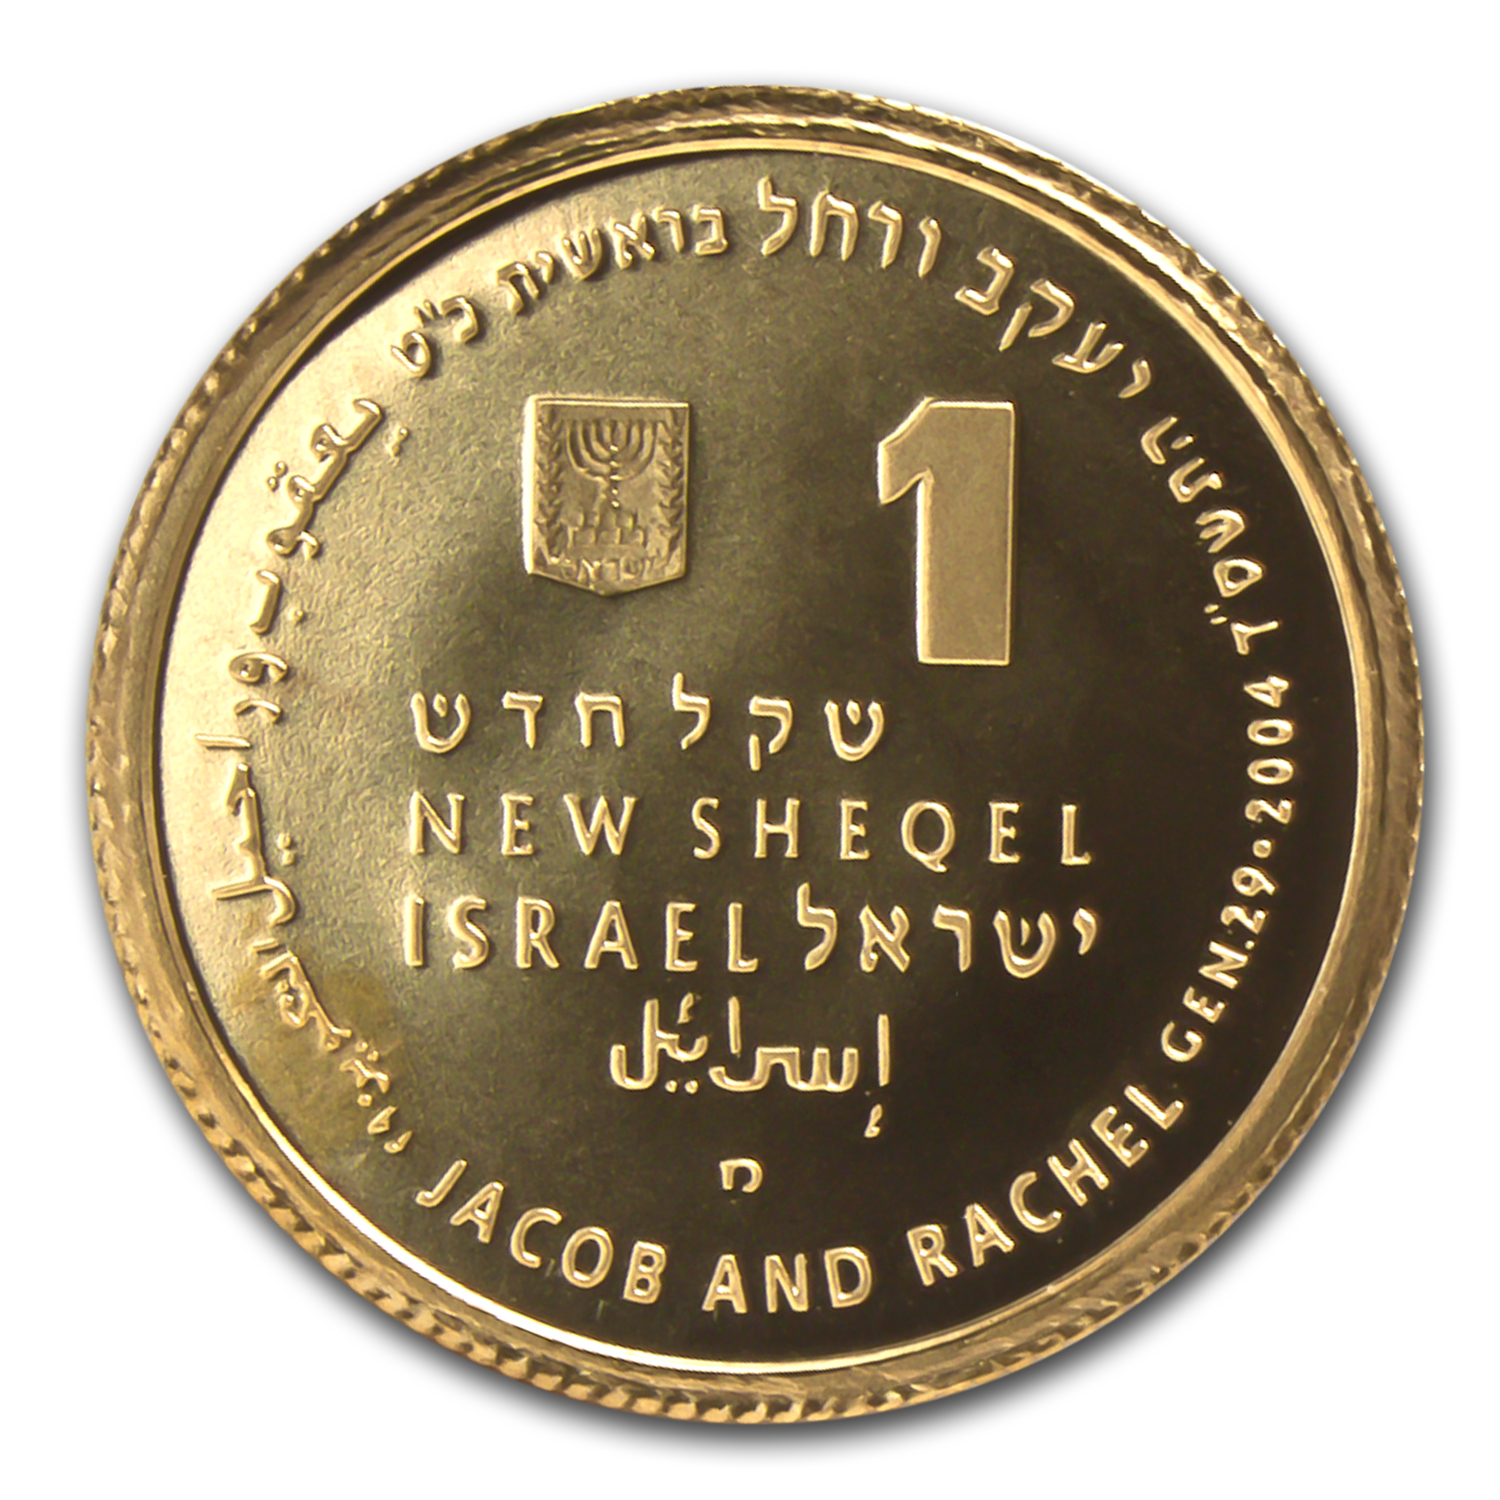 2004 Israel 1/25 oz Proof Gold Jacob & Rachel